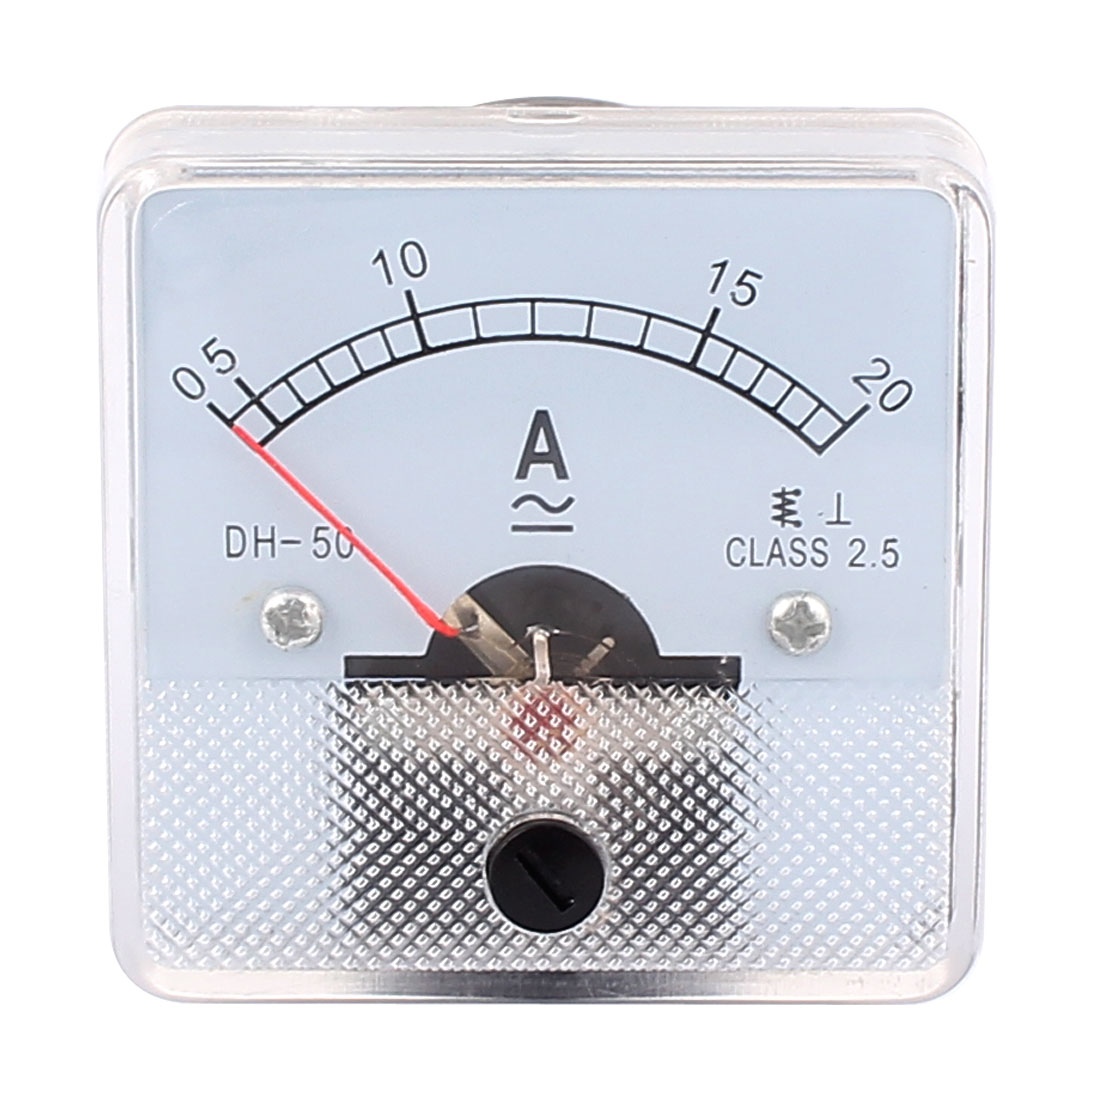 DH-50 AC 0-20A Square Panel Mount Meter Gauge Current Analogue Analog Ammeter